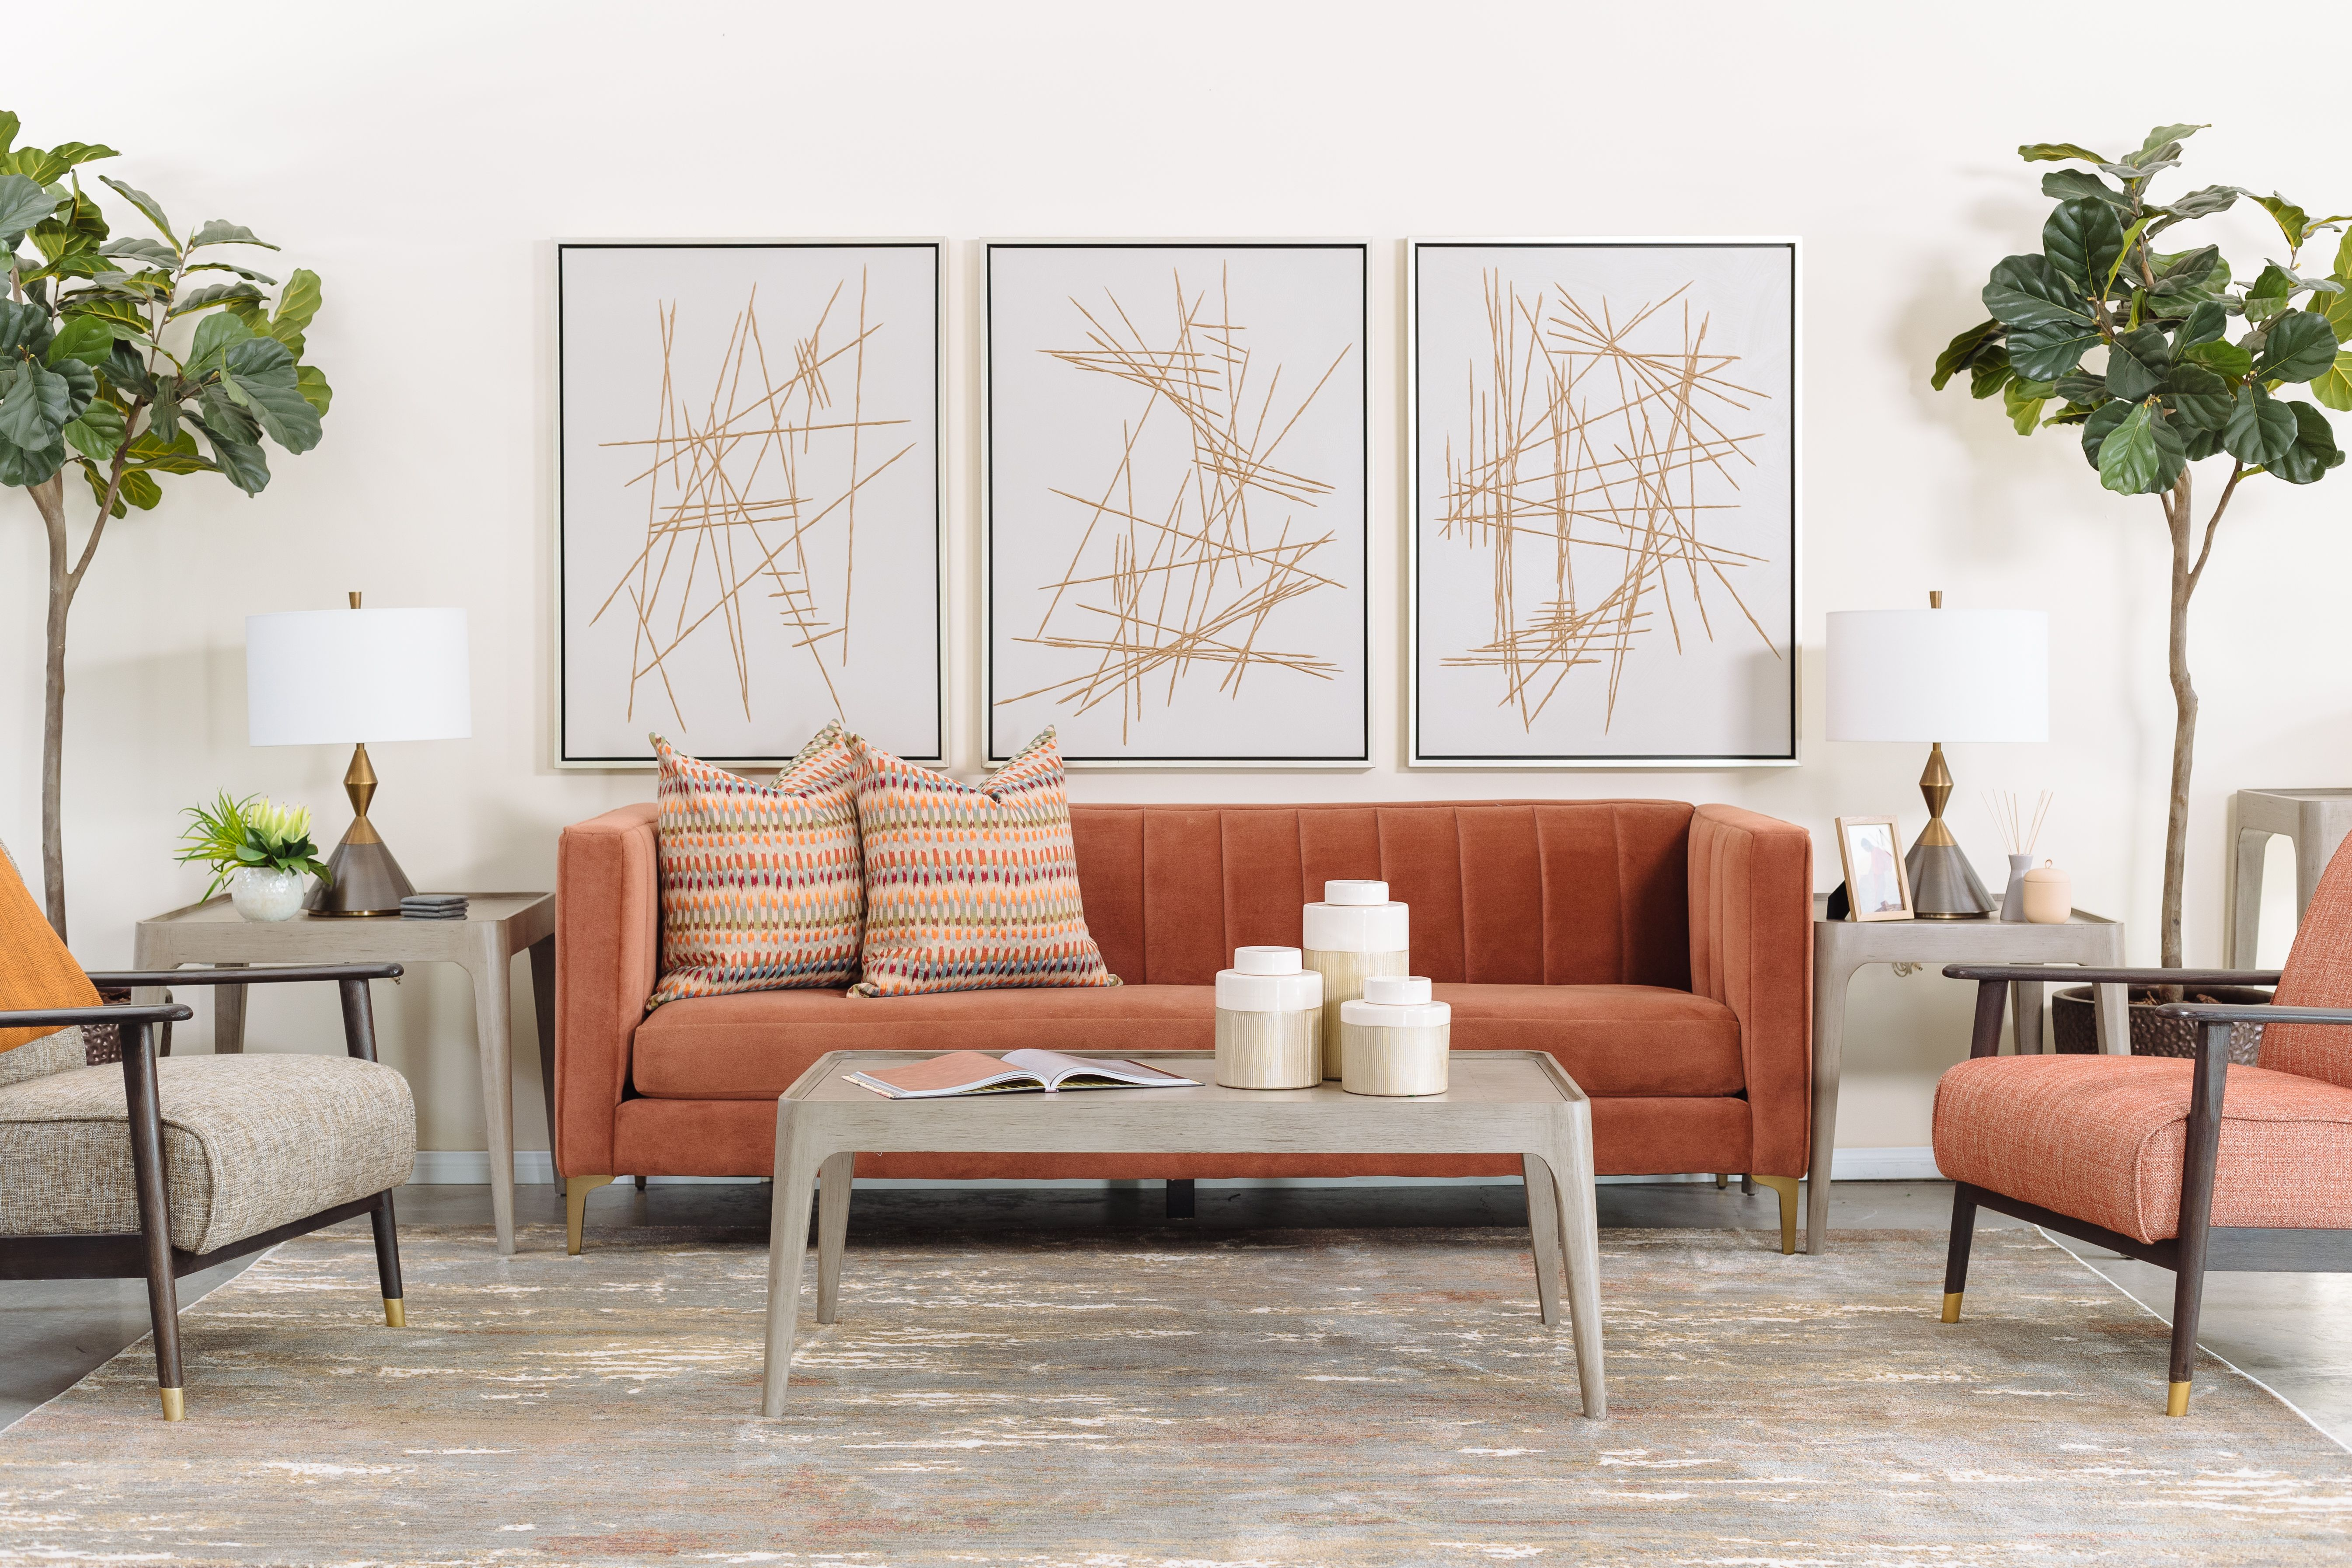 Retro Inspired Looks Image By Mathis Brothers Furniture In 2020 Tufted Sofa Living Room Seating Mid Century Modern Sofa